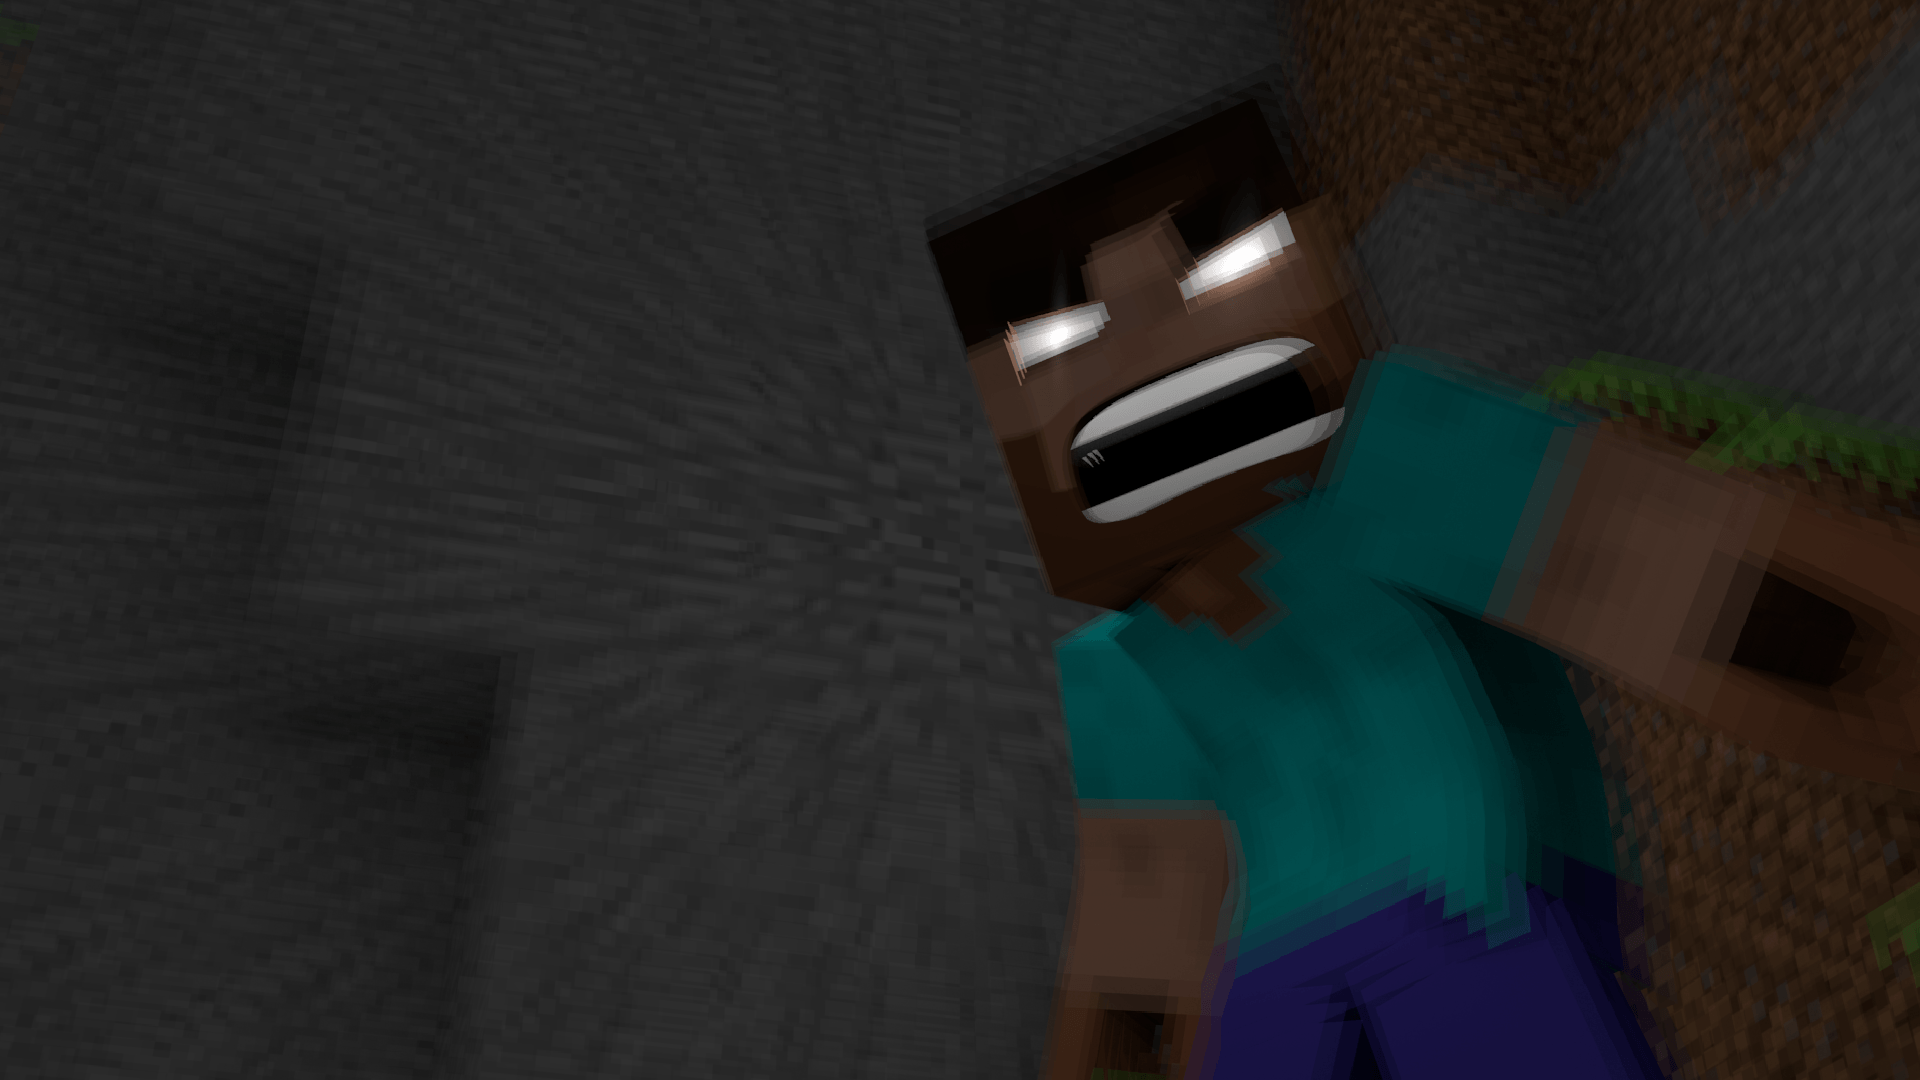 Angry Herobrine Wallpaper 46124 1920x1080 Px HDWallSource